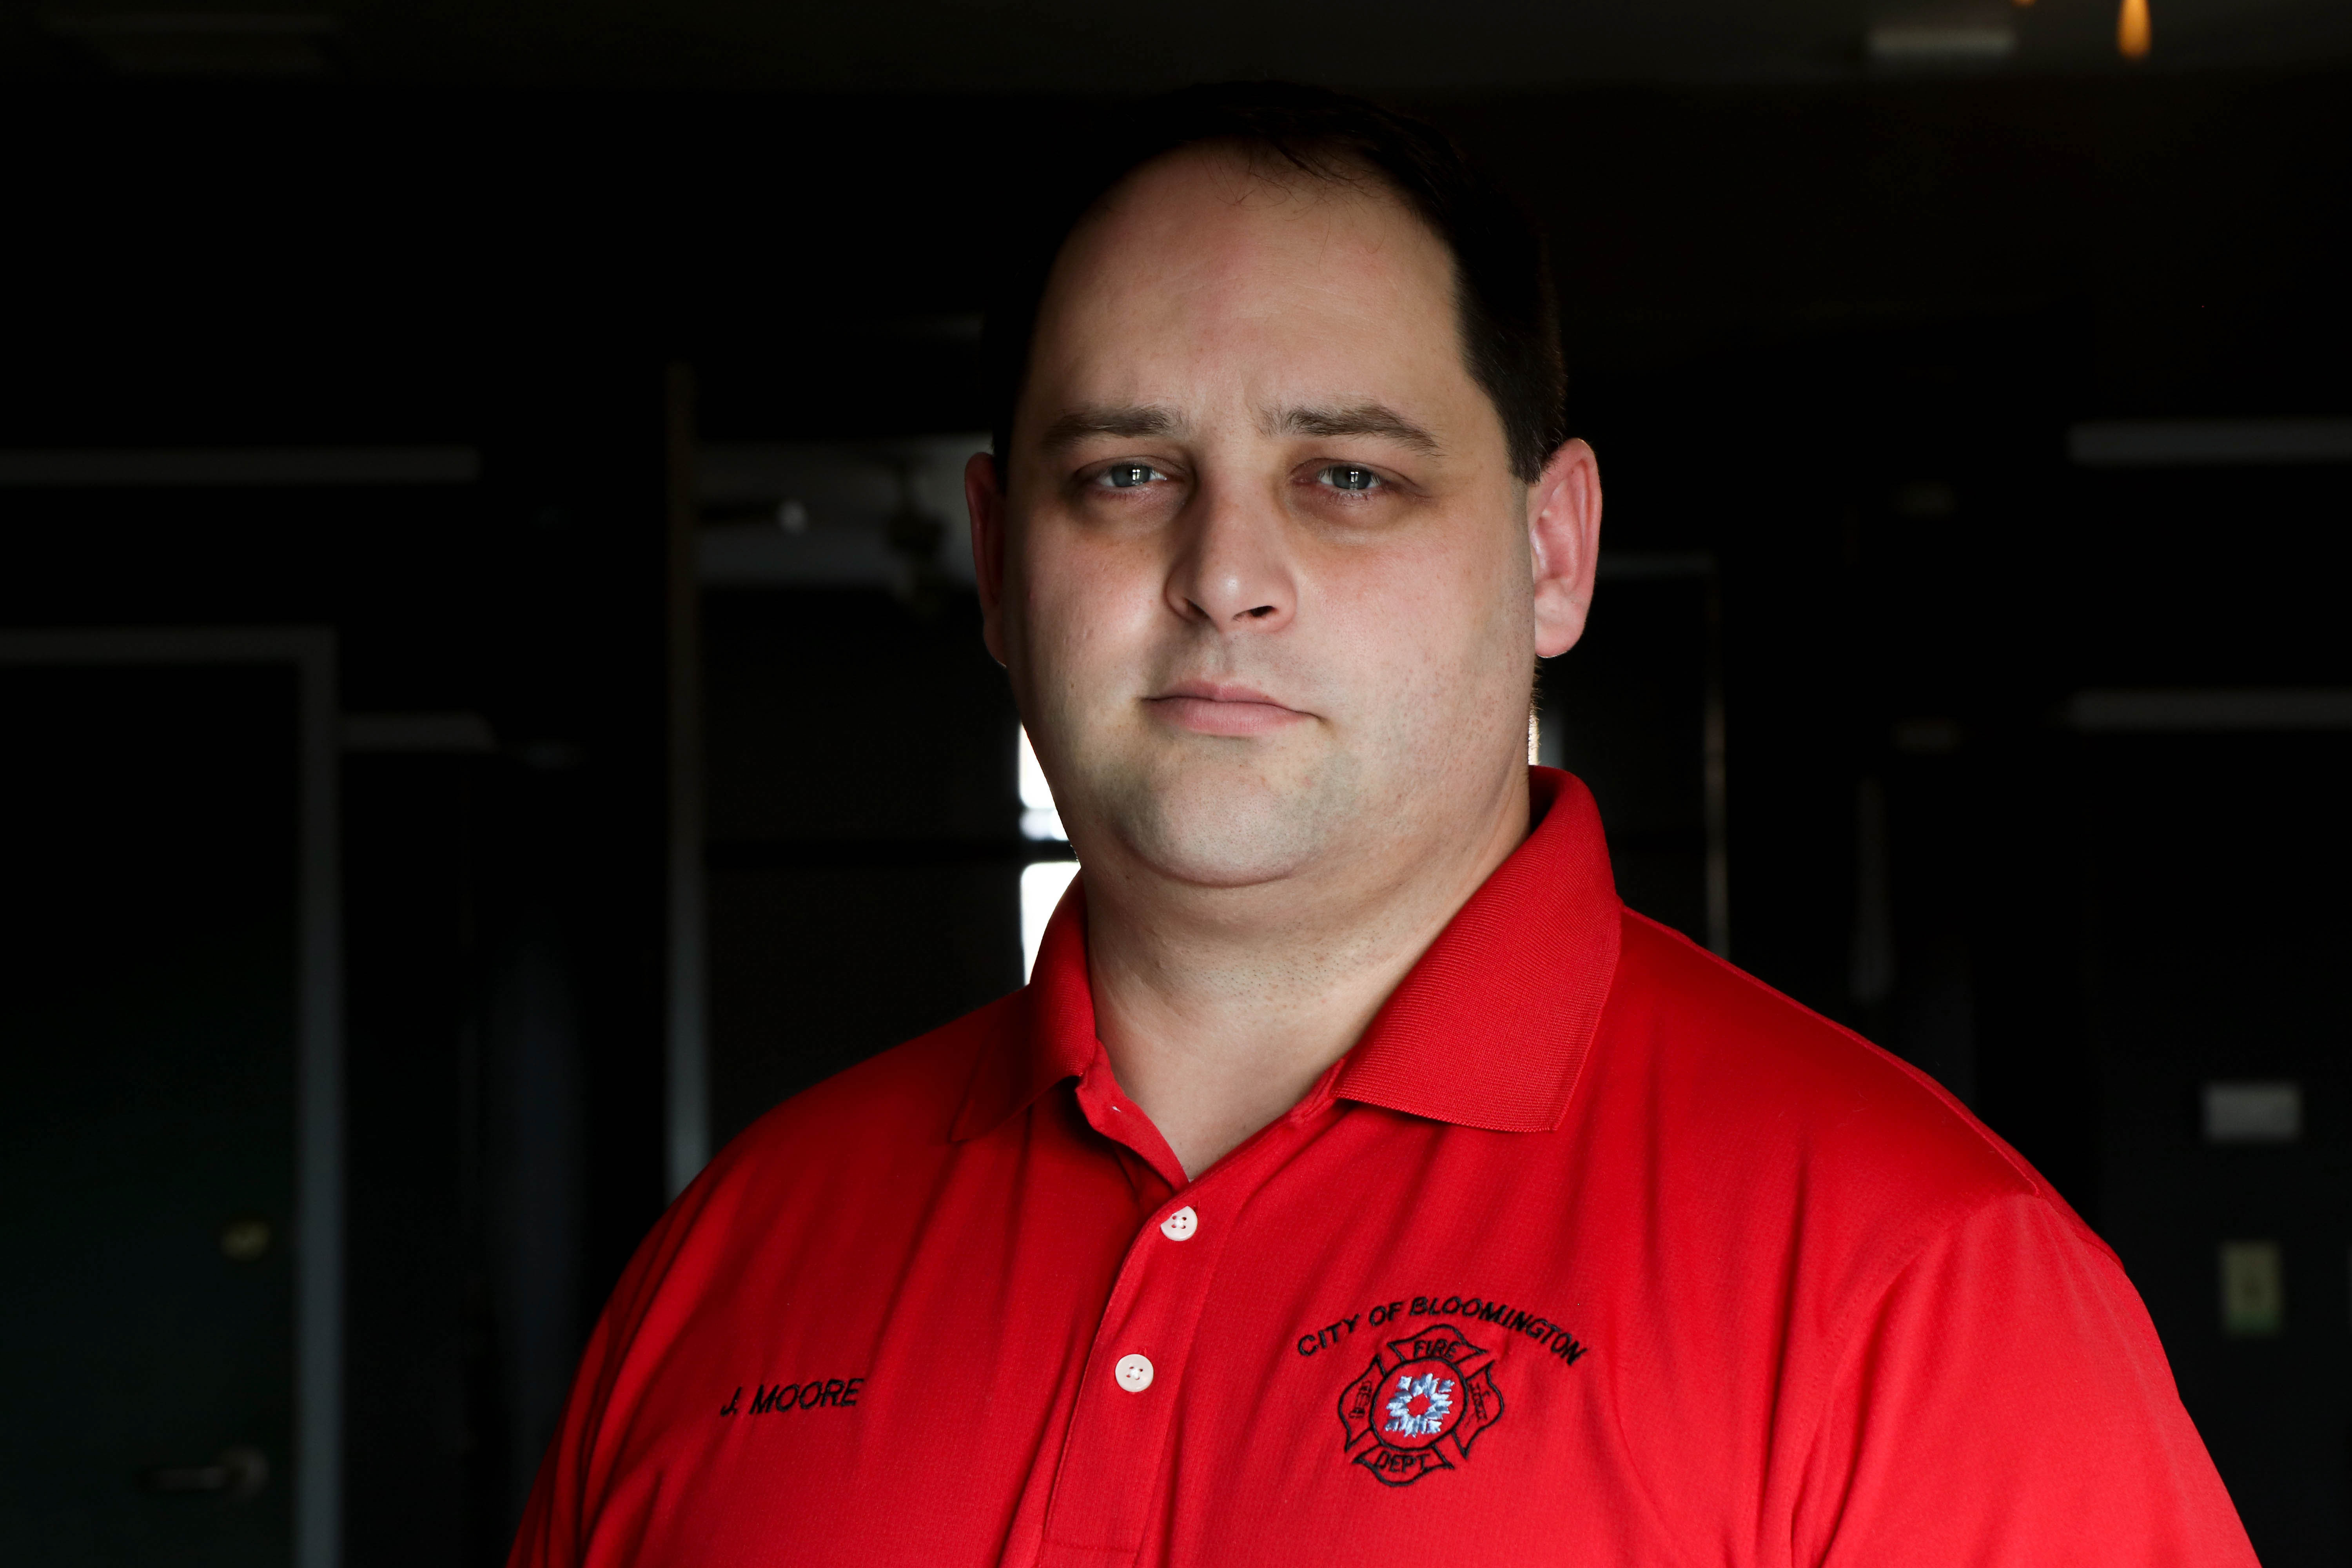 A portrait of Bloomington Fire Chief Jason Moore, who is wearing a red shirt and looking directly into the camera.